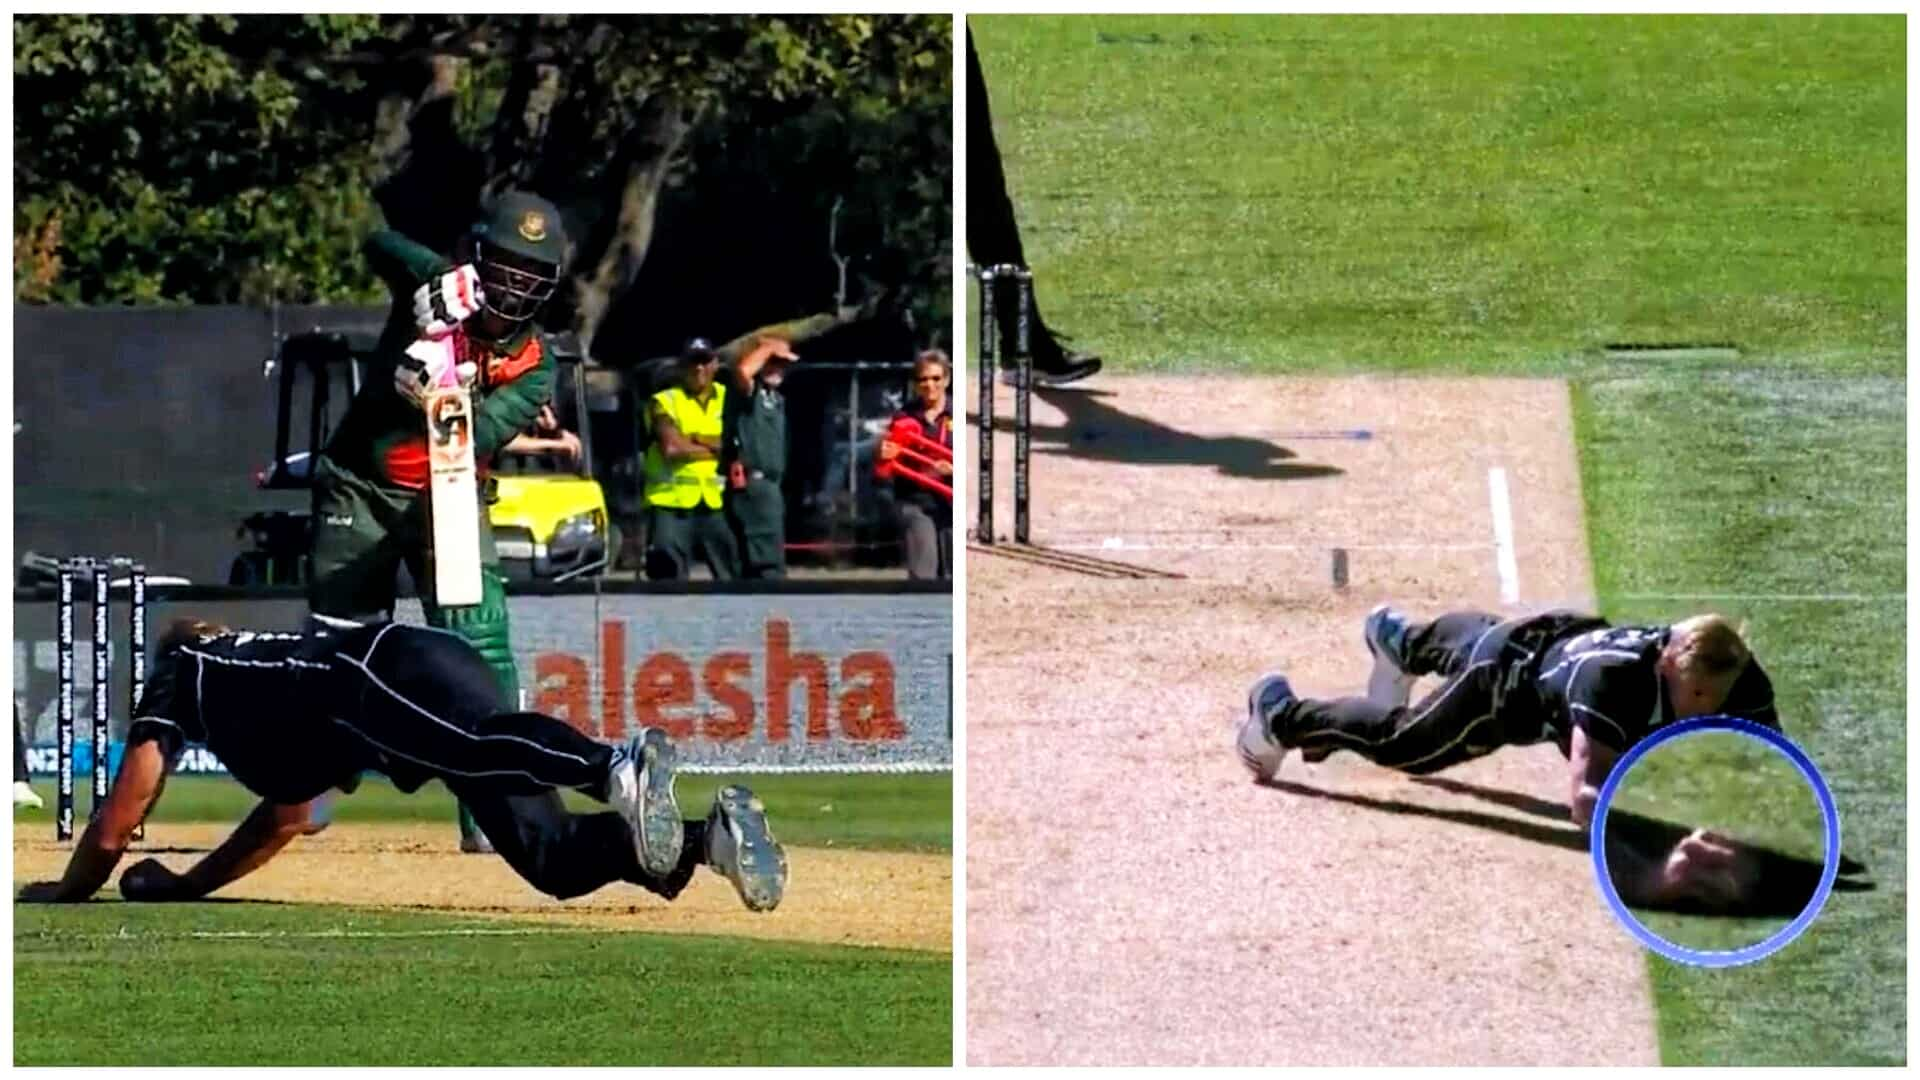 Was Tamin Iqbal Out: Kyle Jamieson's 'Catch' During NZ vs BAN 2nd ODI Fuels Controversy